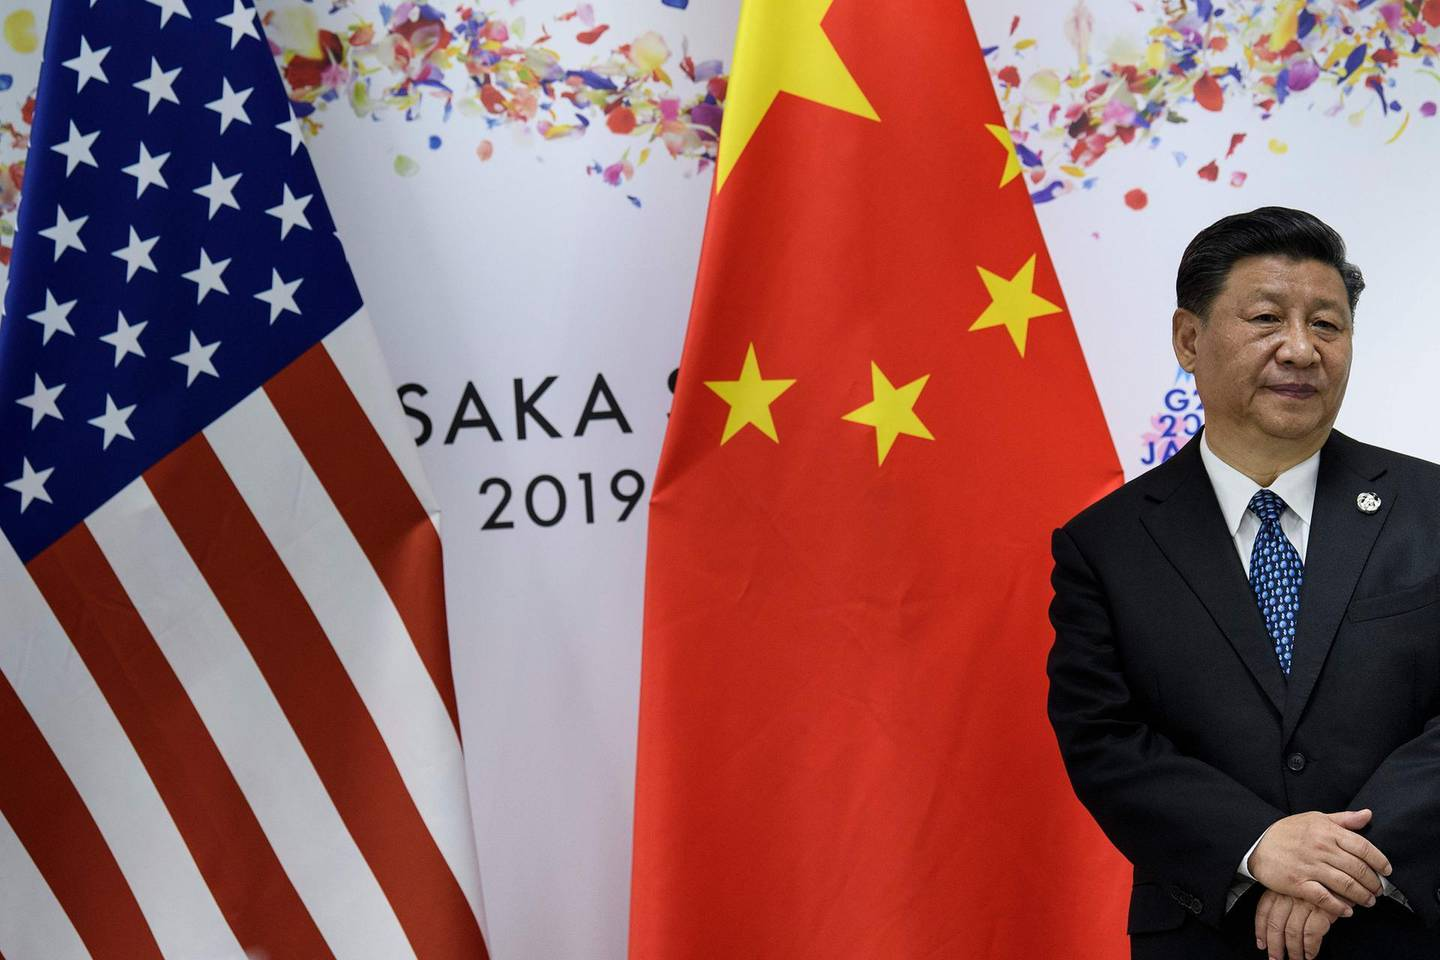 China's President Xi Jinping waits for a meeting with US President Donald Trump (not pictured) on the sidelines of the G20 Summit in Osaka on June 29, 2019. / AFP / Brendan Smialowski